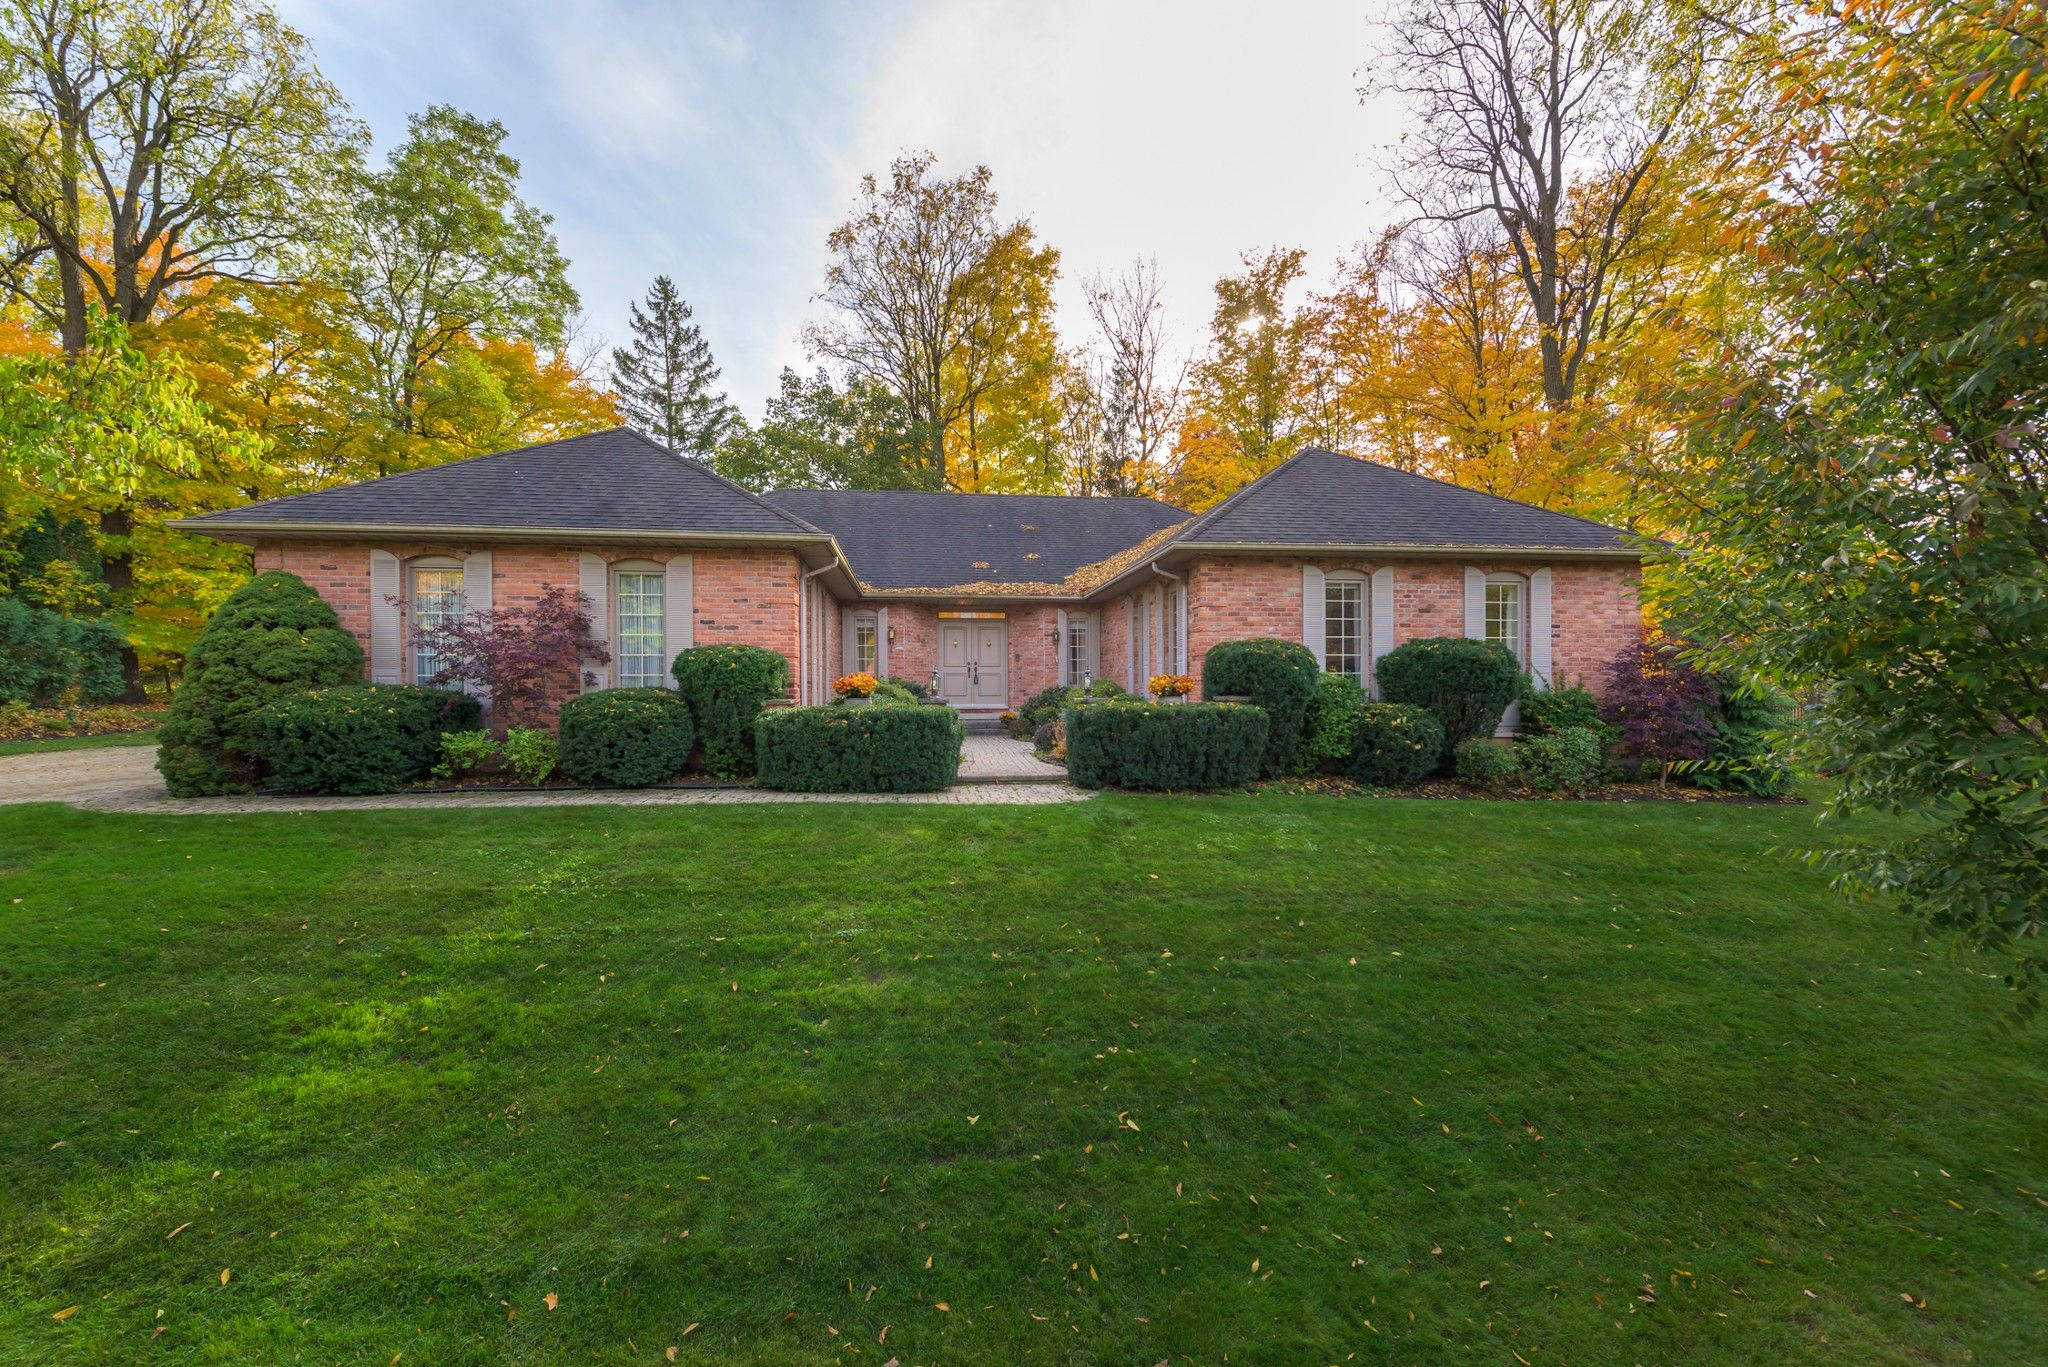 Main Photo: 39 PITCARNIE Crescent in London: Property for sale : MLS®# 40036244